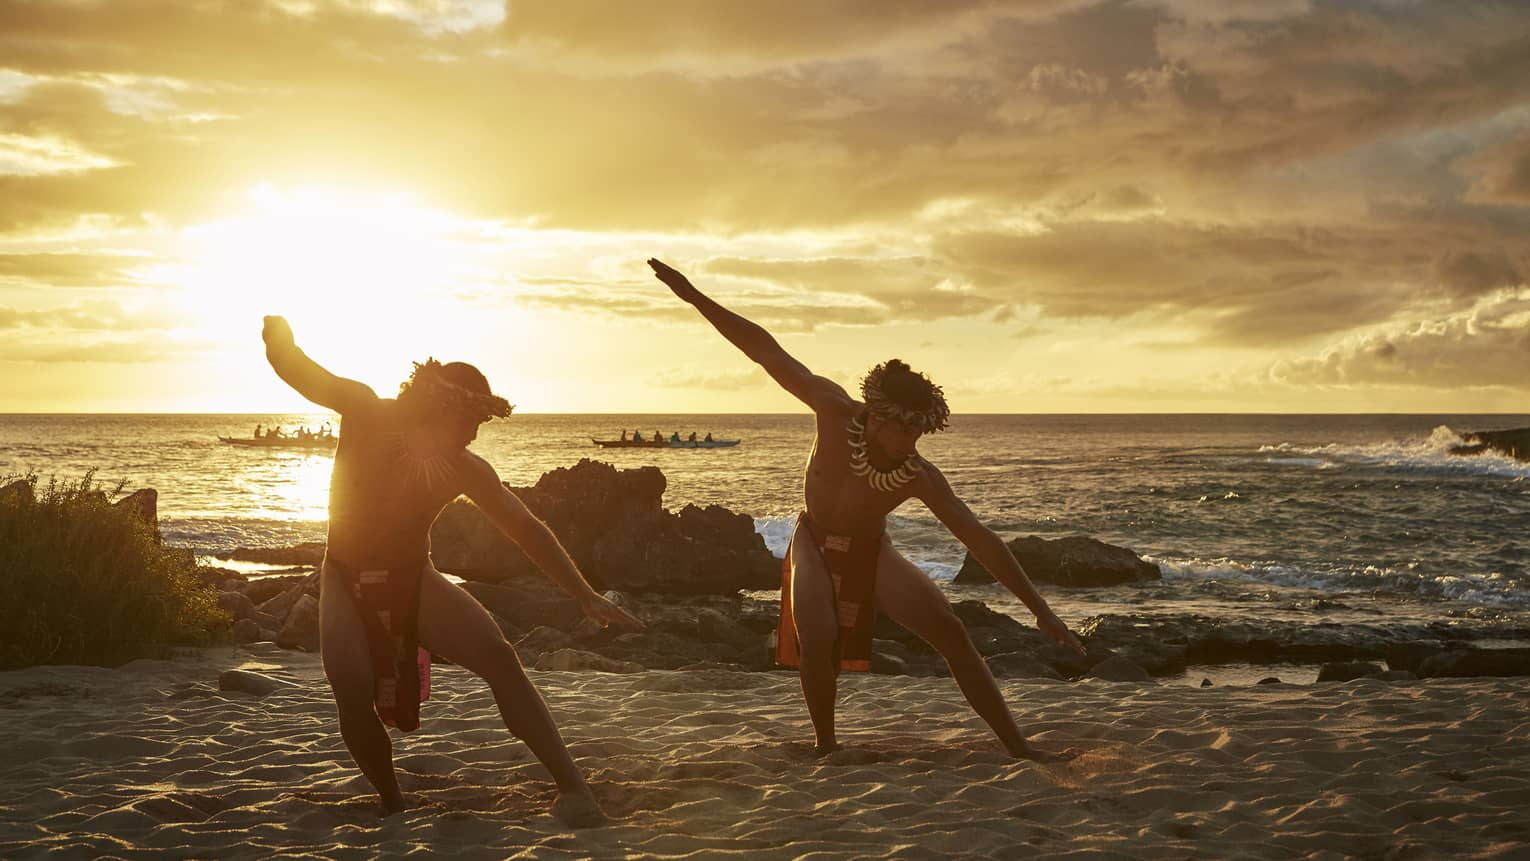 Two Hawaiian dancers with arms outstretched pose on sandy beach at sunset